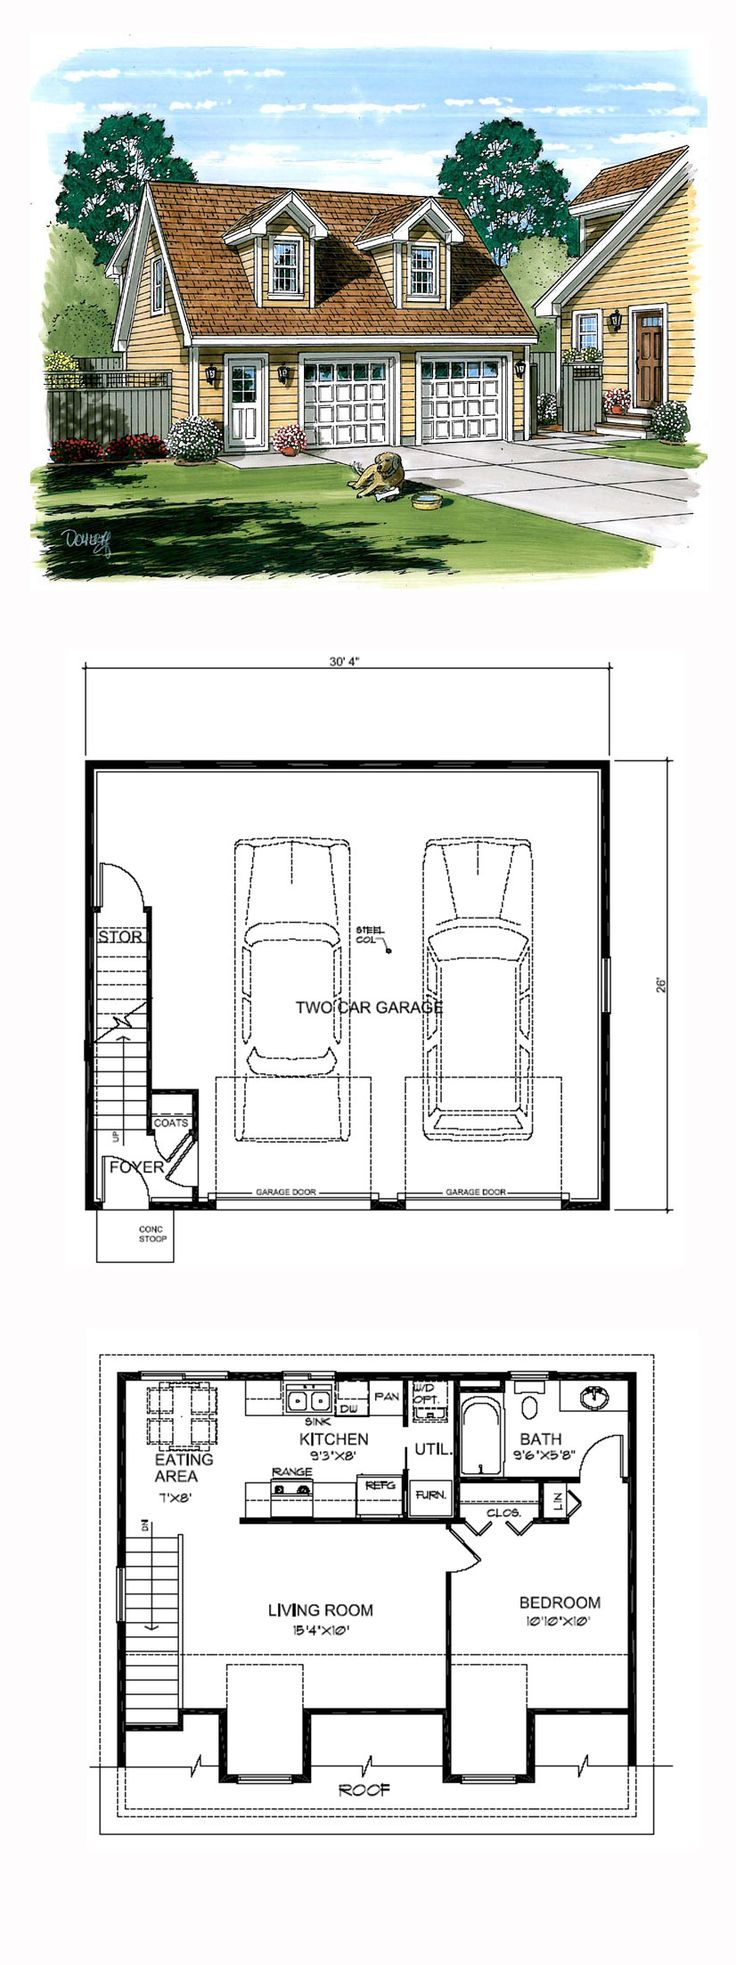 marvelous small garage apartment plans #4: Garage Apartment Plan 30030 | Total Living Area: 687 sq. ft., 1